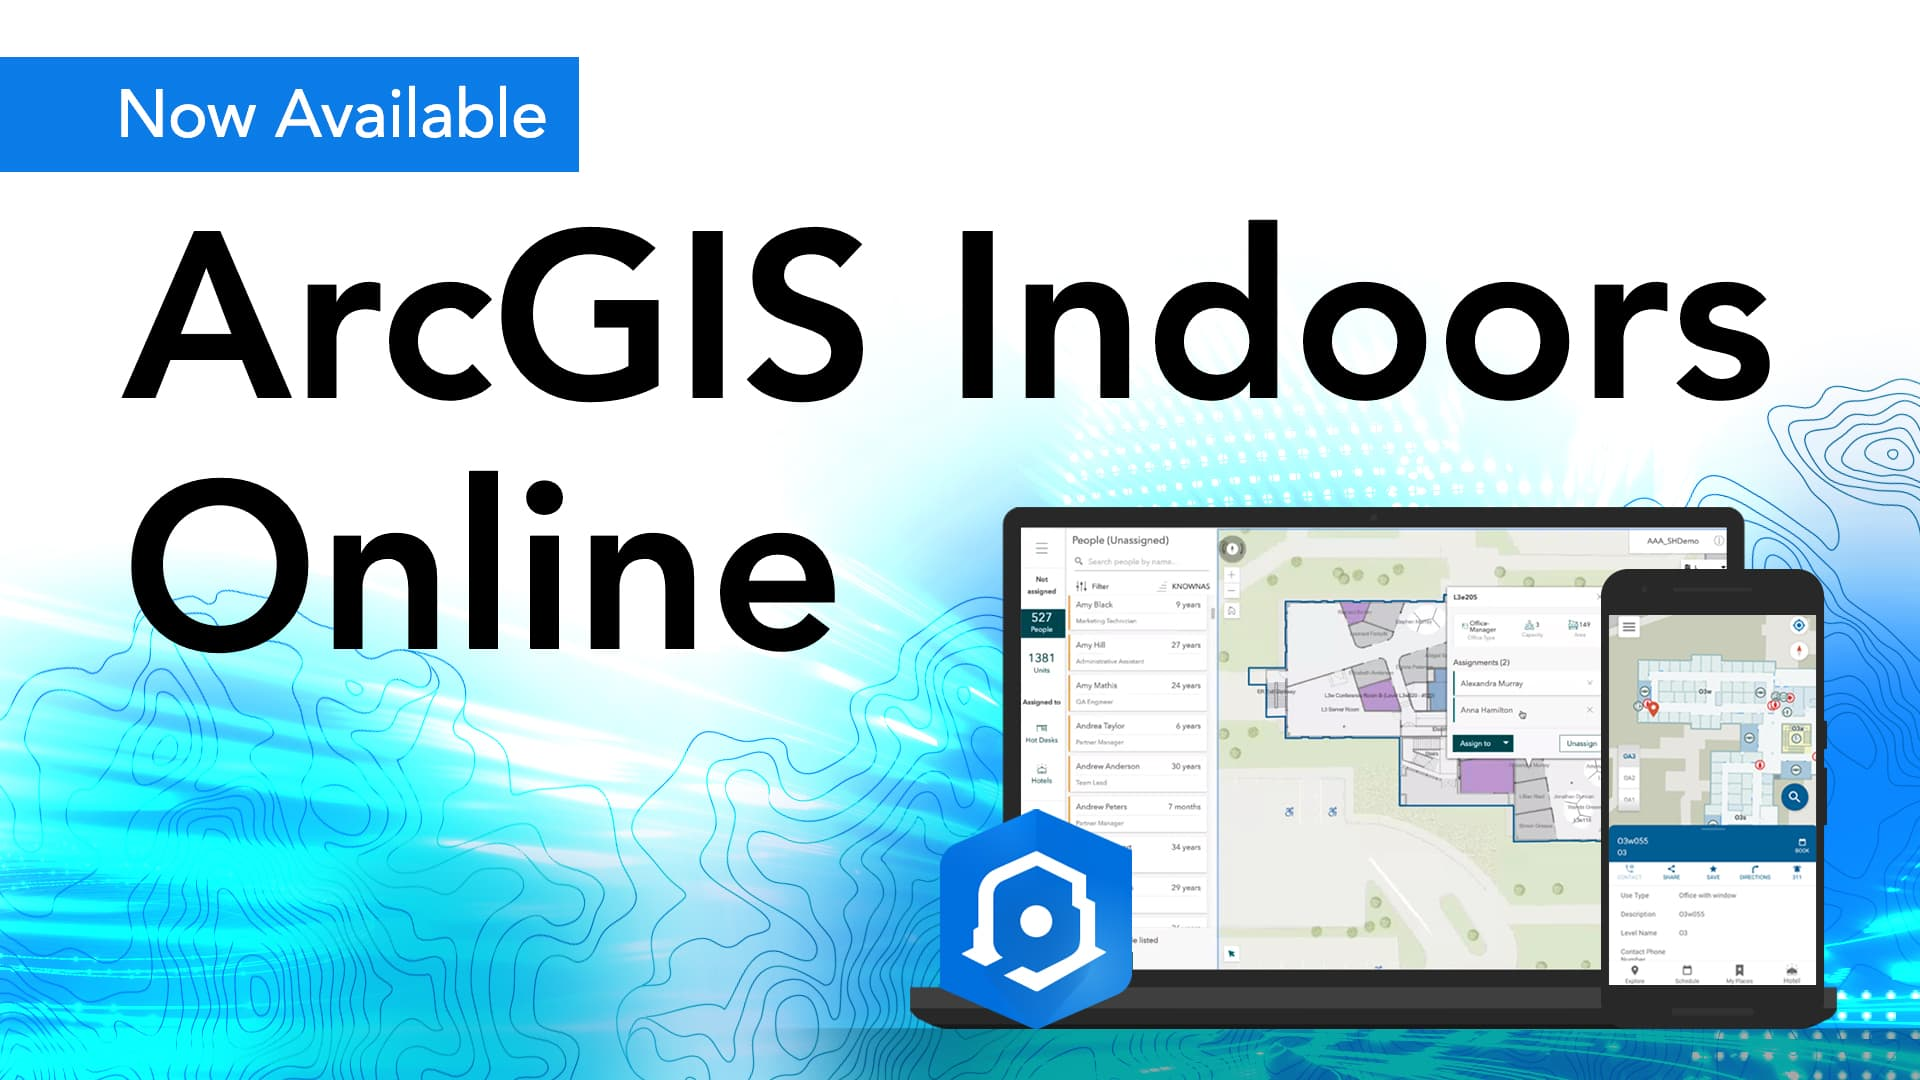 /wp-content/uploads/2020/07/arcgis-indoors-online-banner-illustrations_space-planner_1920x1080.jpg